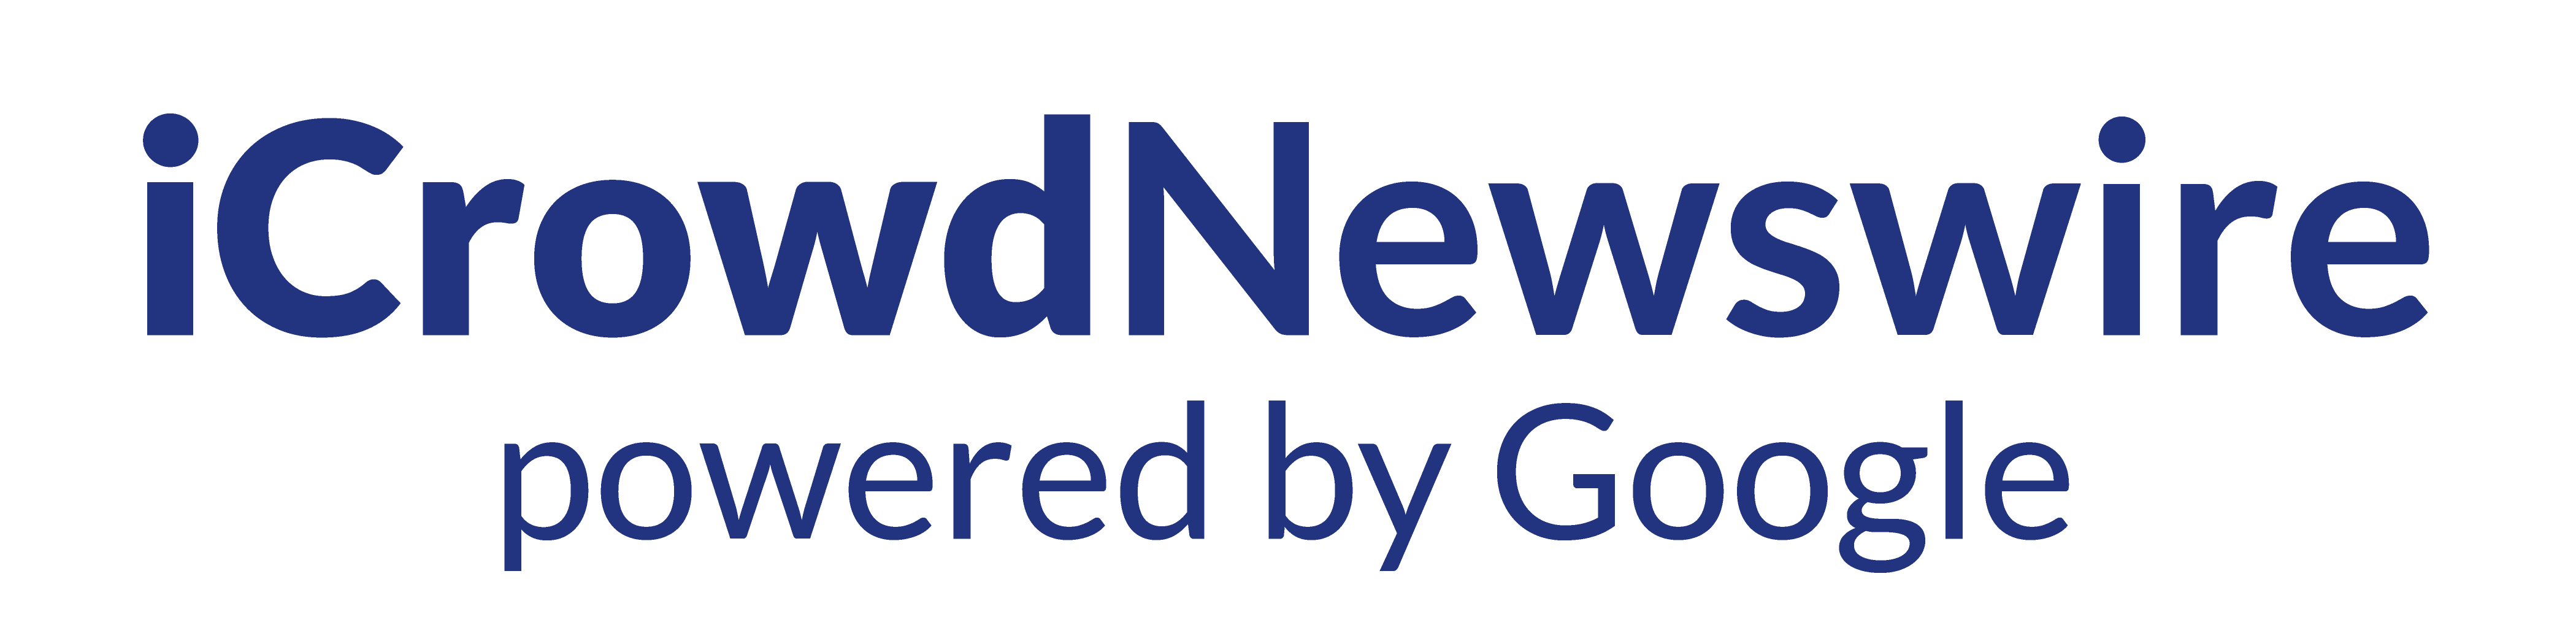 You Can Get What You Speak – ReleaseLive under the umbrella of iCrowdNewswire launched Voice and Voice search feature in Press Release Industry